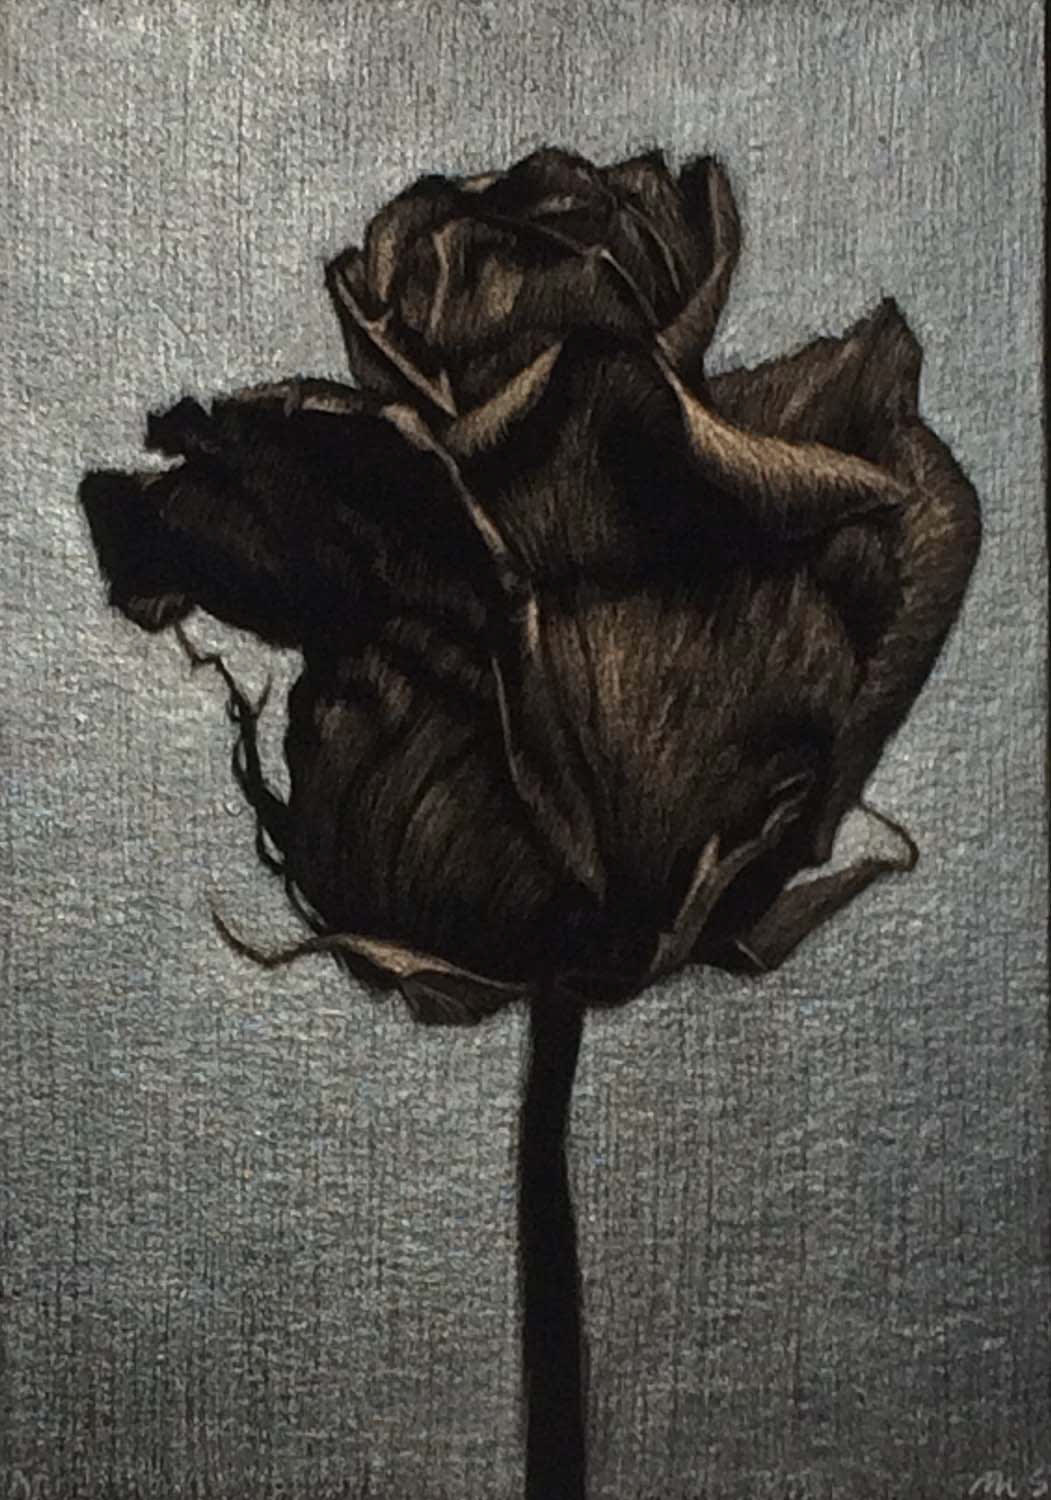 Marjorie Williams-Smith, New Rose in Gold, 2018